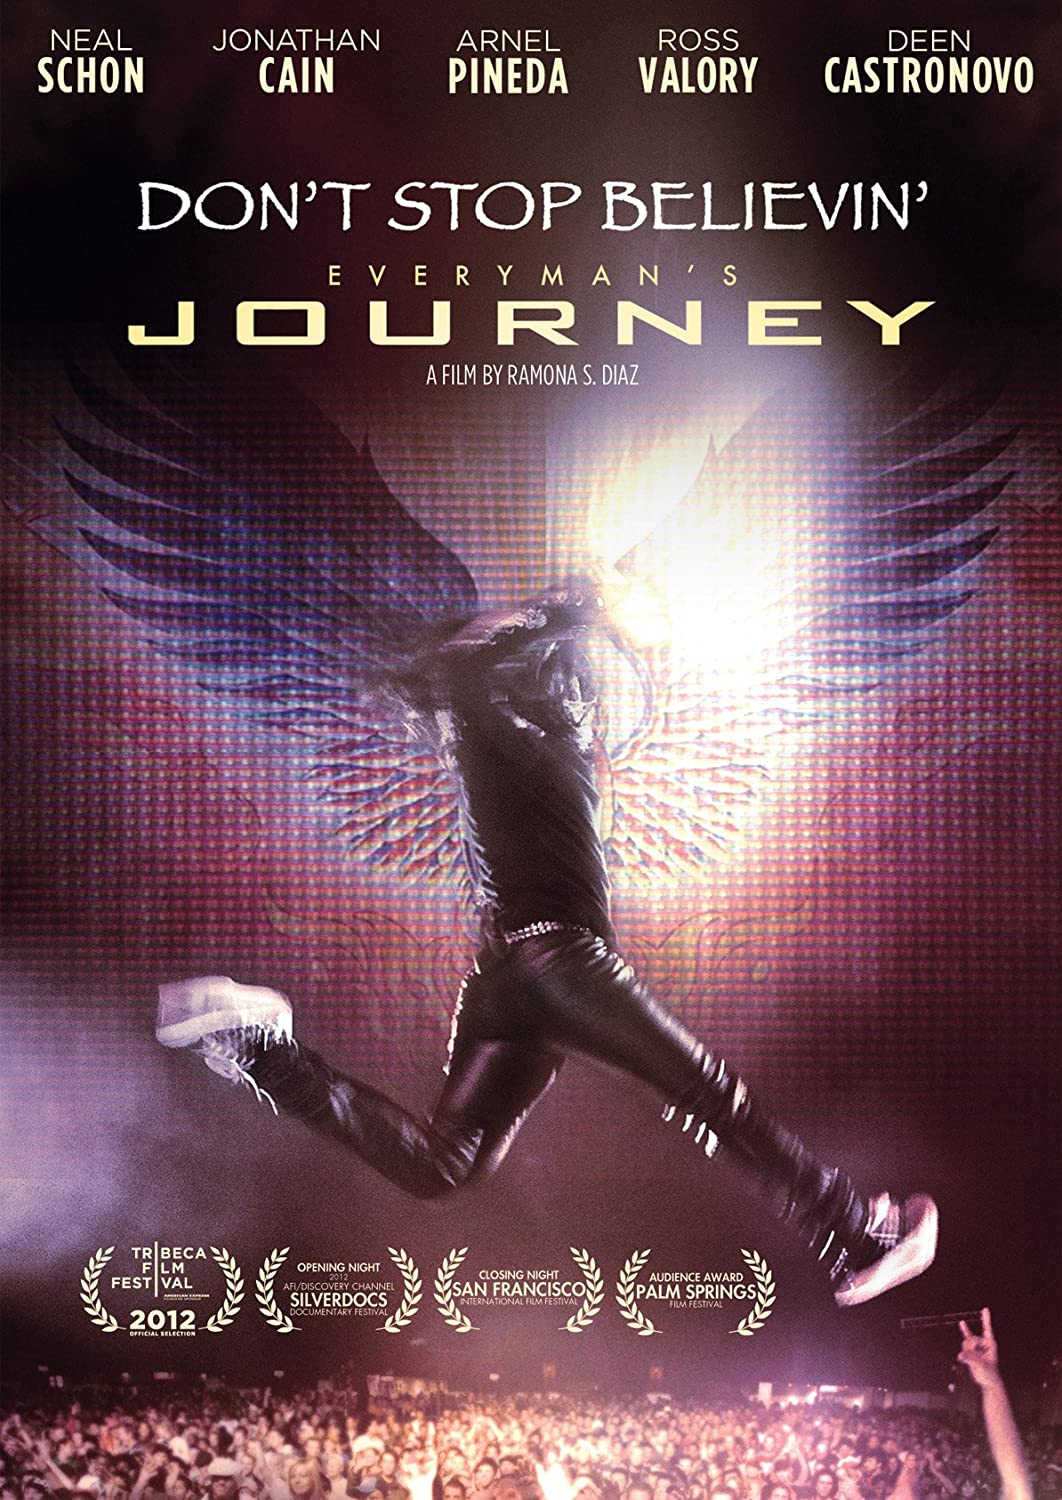 amazon com dont stop believin everyman s journey neal schon amazon com dont stop believin everyman s journey neal schon jonathan cain ross valory deen castronovo arnel pineda ramona s diaz movies tv